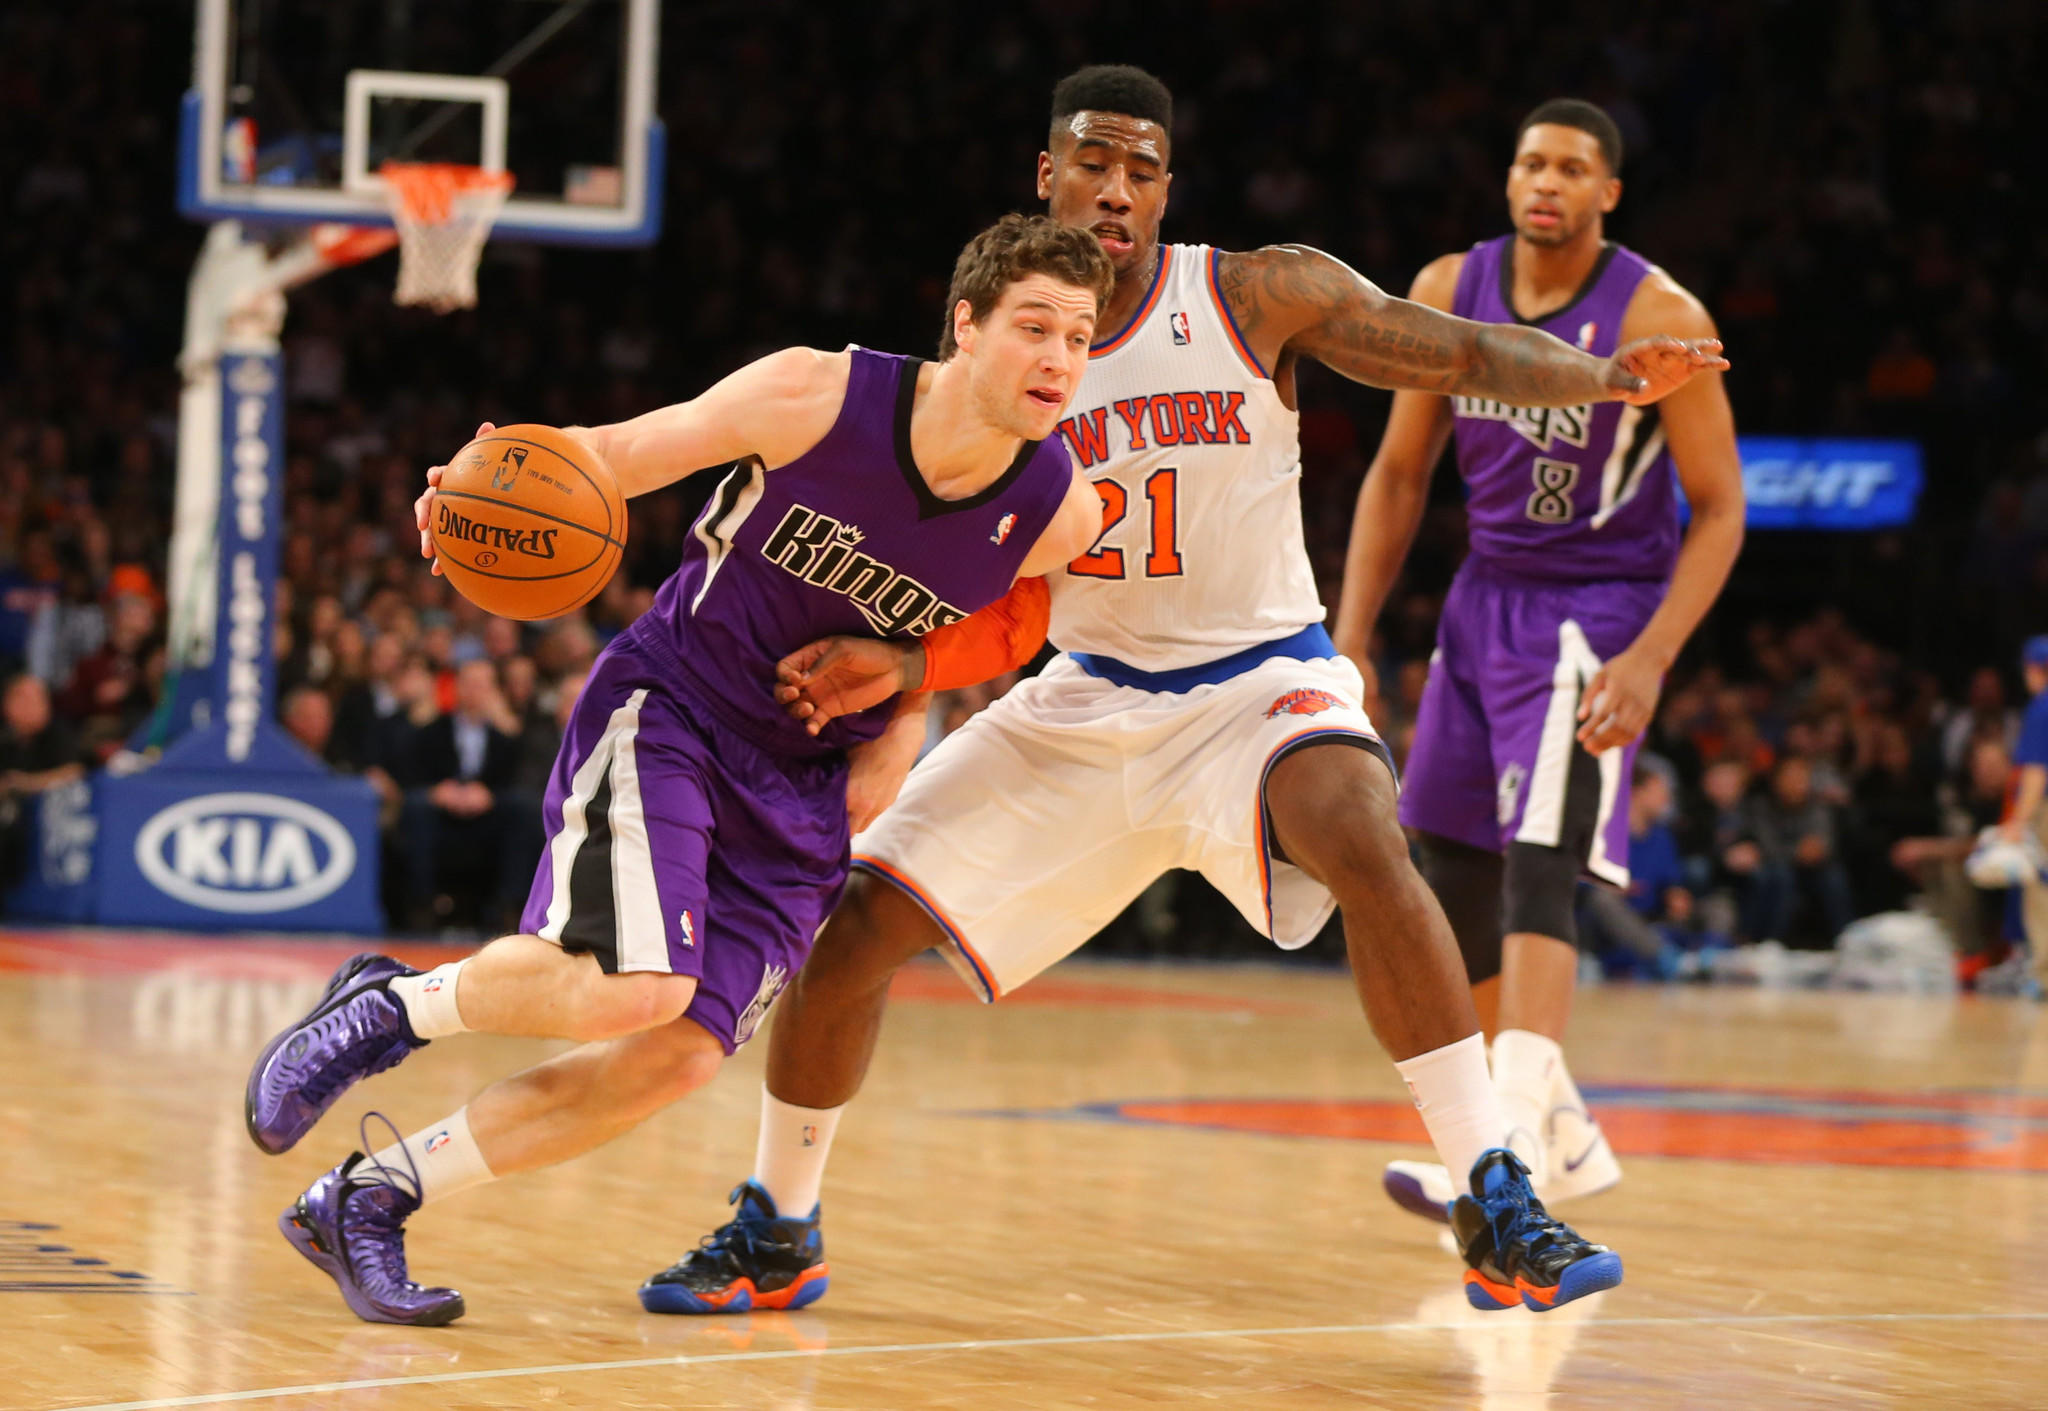 Sacramento Kings point guard Jimmer Fredette drives to the basket against the New York Knicks.